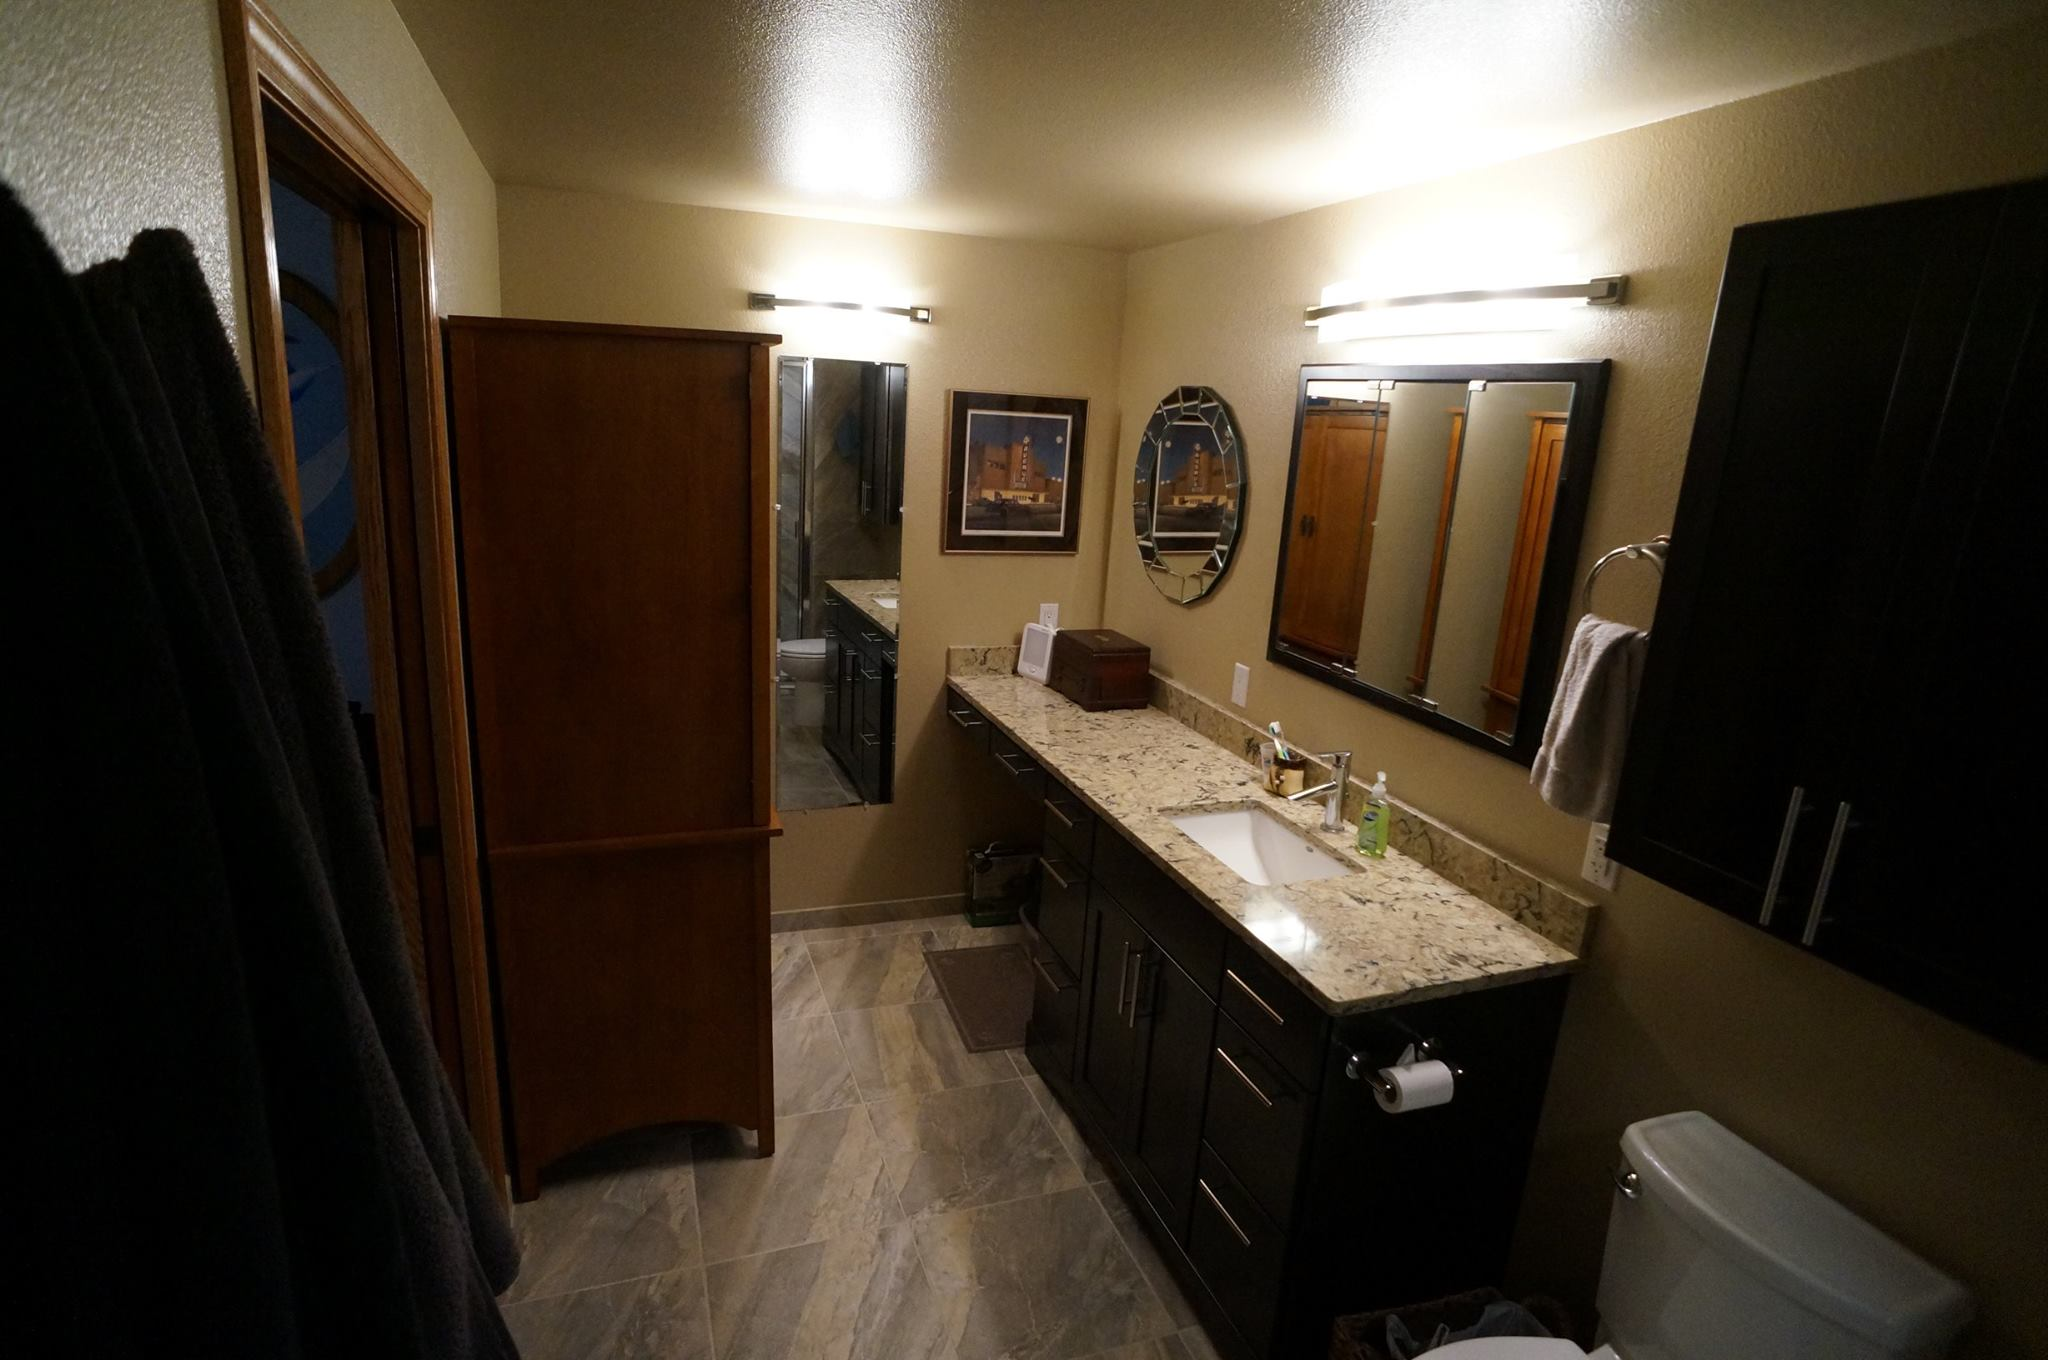 Remodeled bathroom with dark cabinets and granite counter tops on vanity